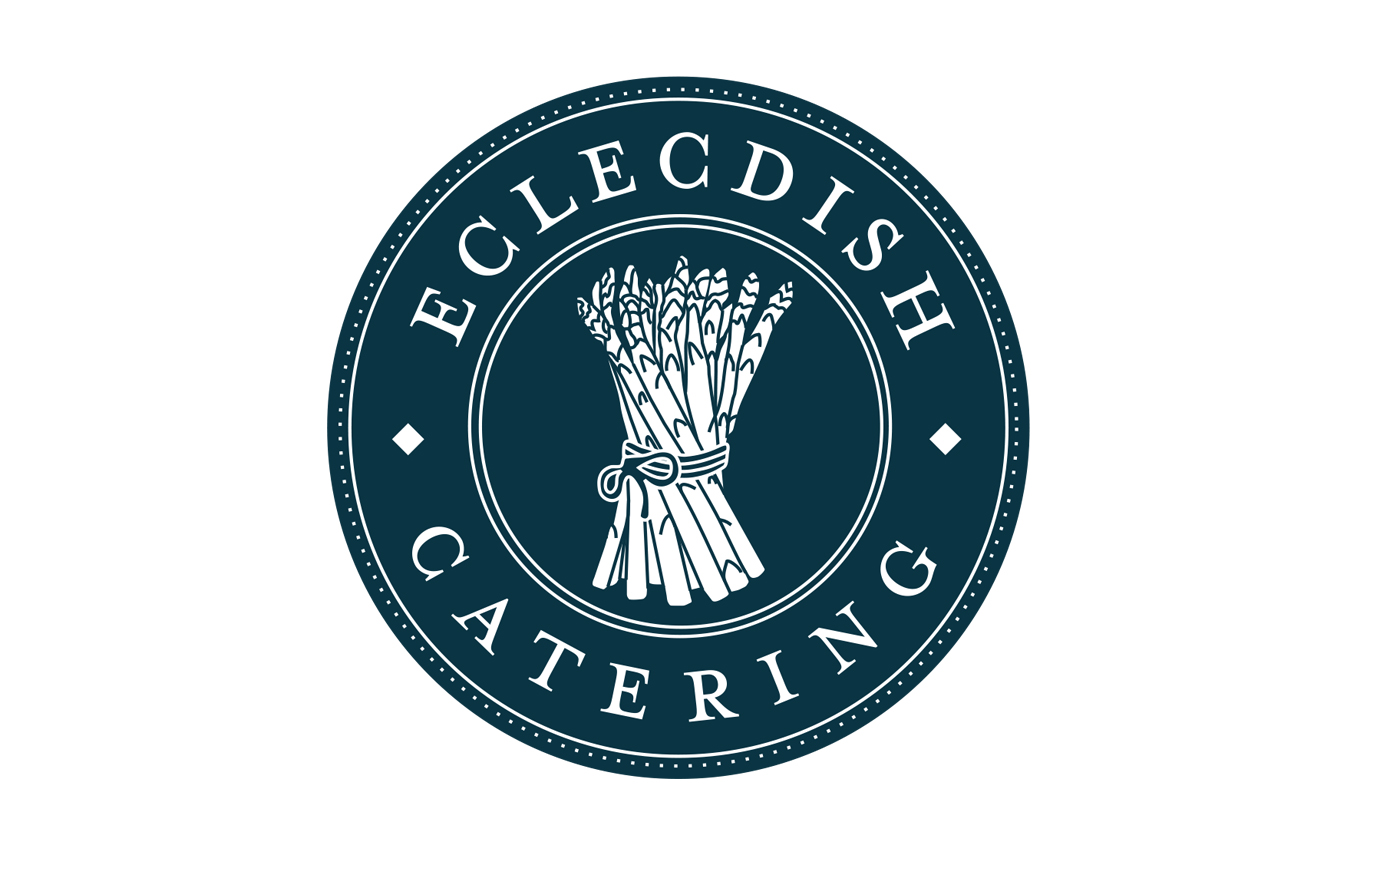 Eclecdish Catering